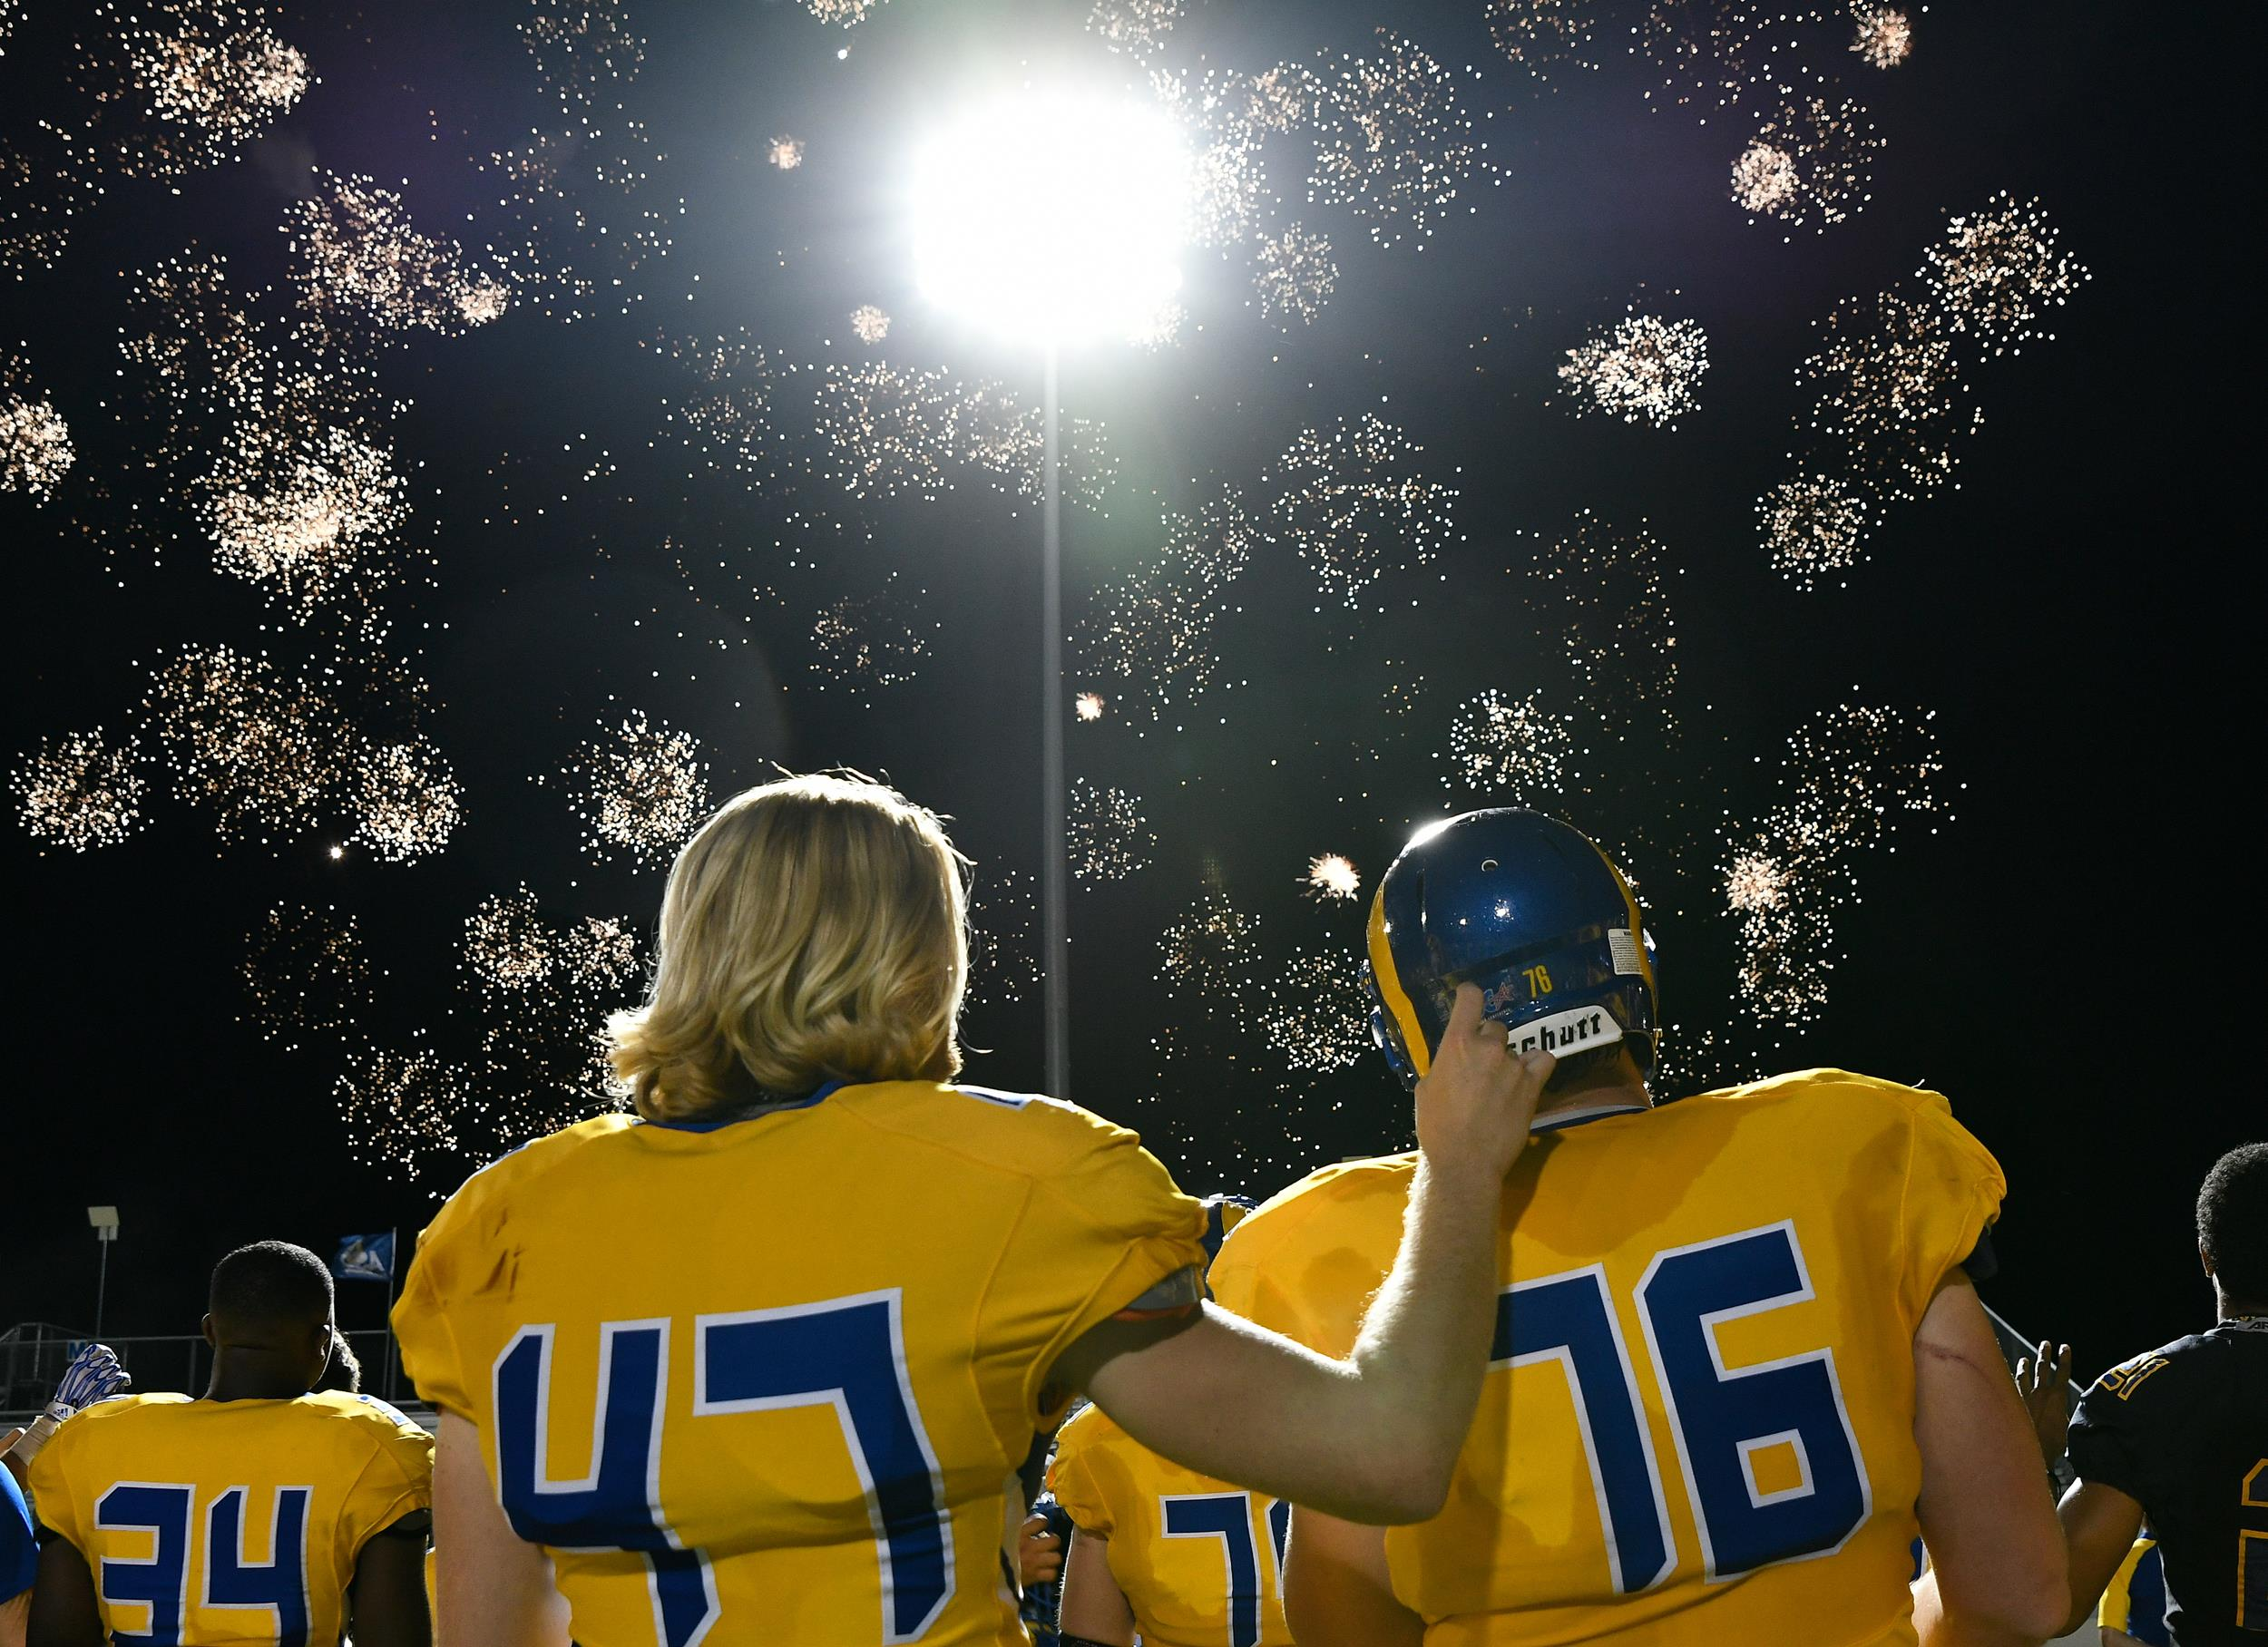 Asu To Face Wt In Annual Homecoming Game Angelo State